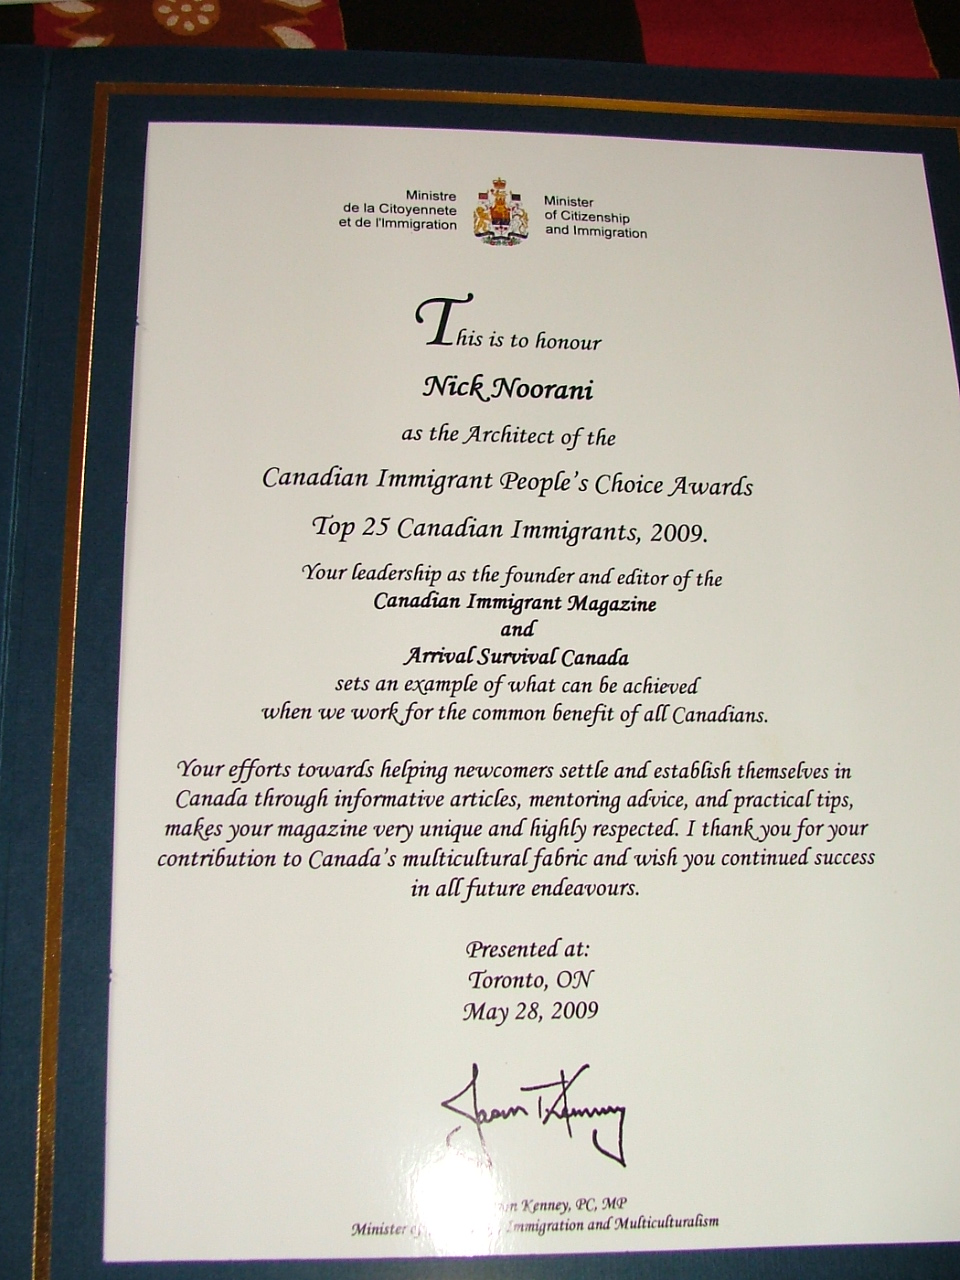 Recognition from Immigration Minister